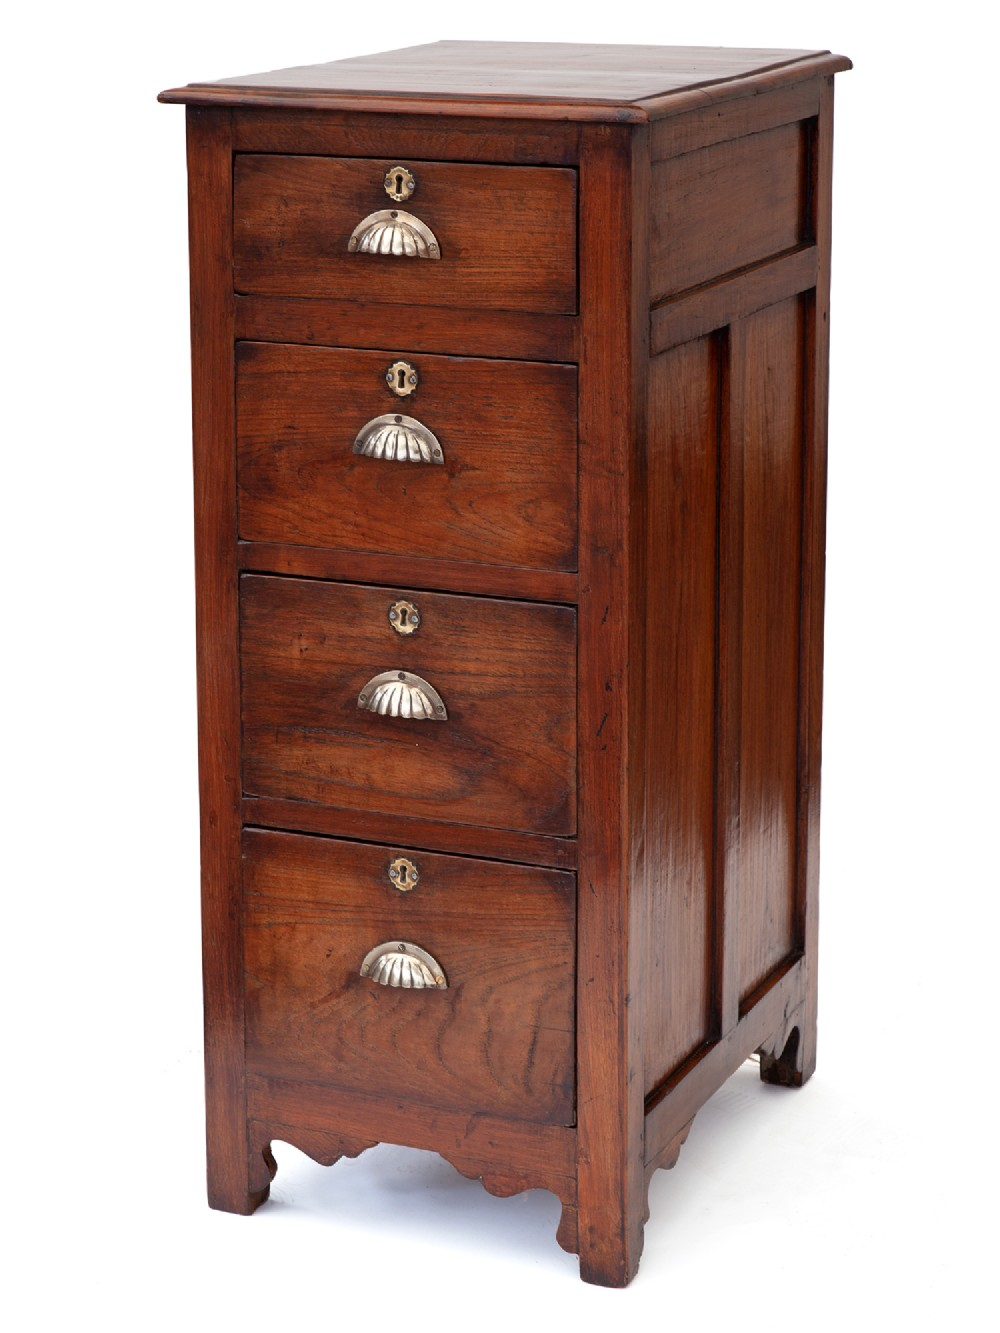 polished walnut shop chest with four graduated drawers and original brass scallop handles